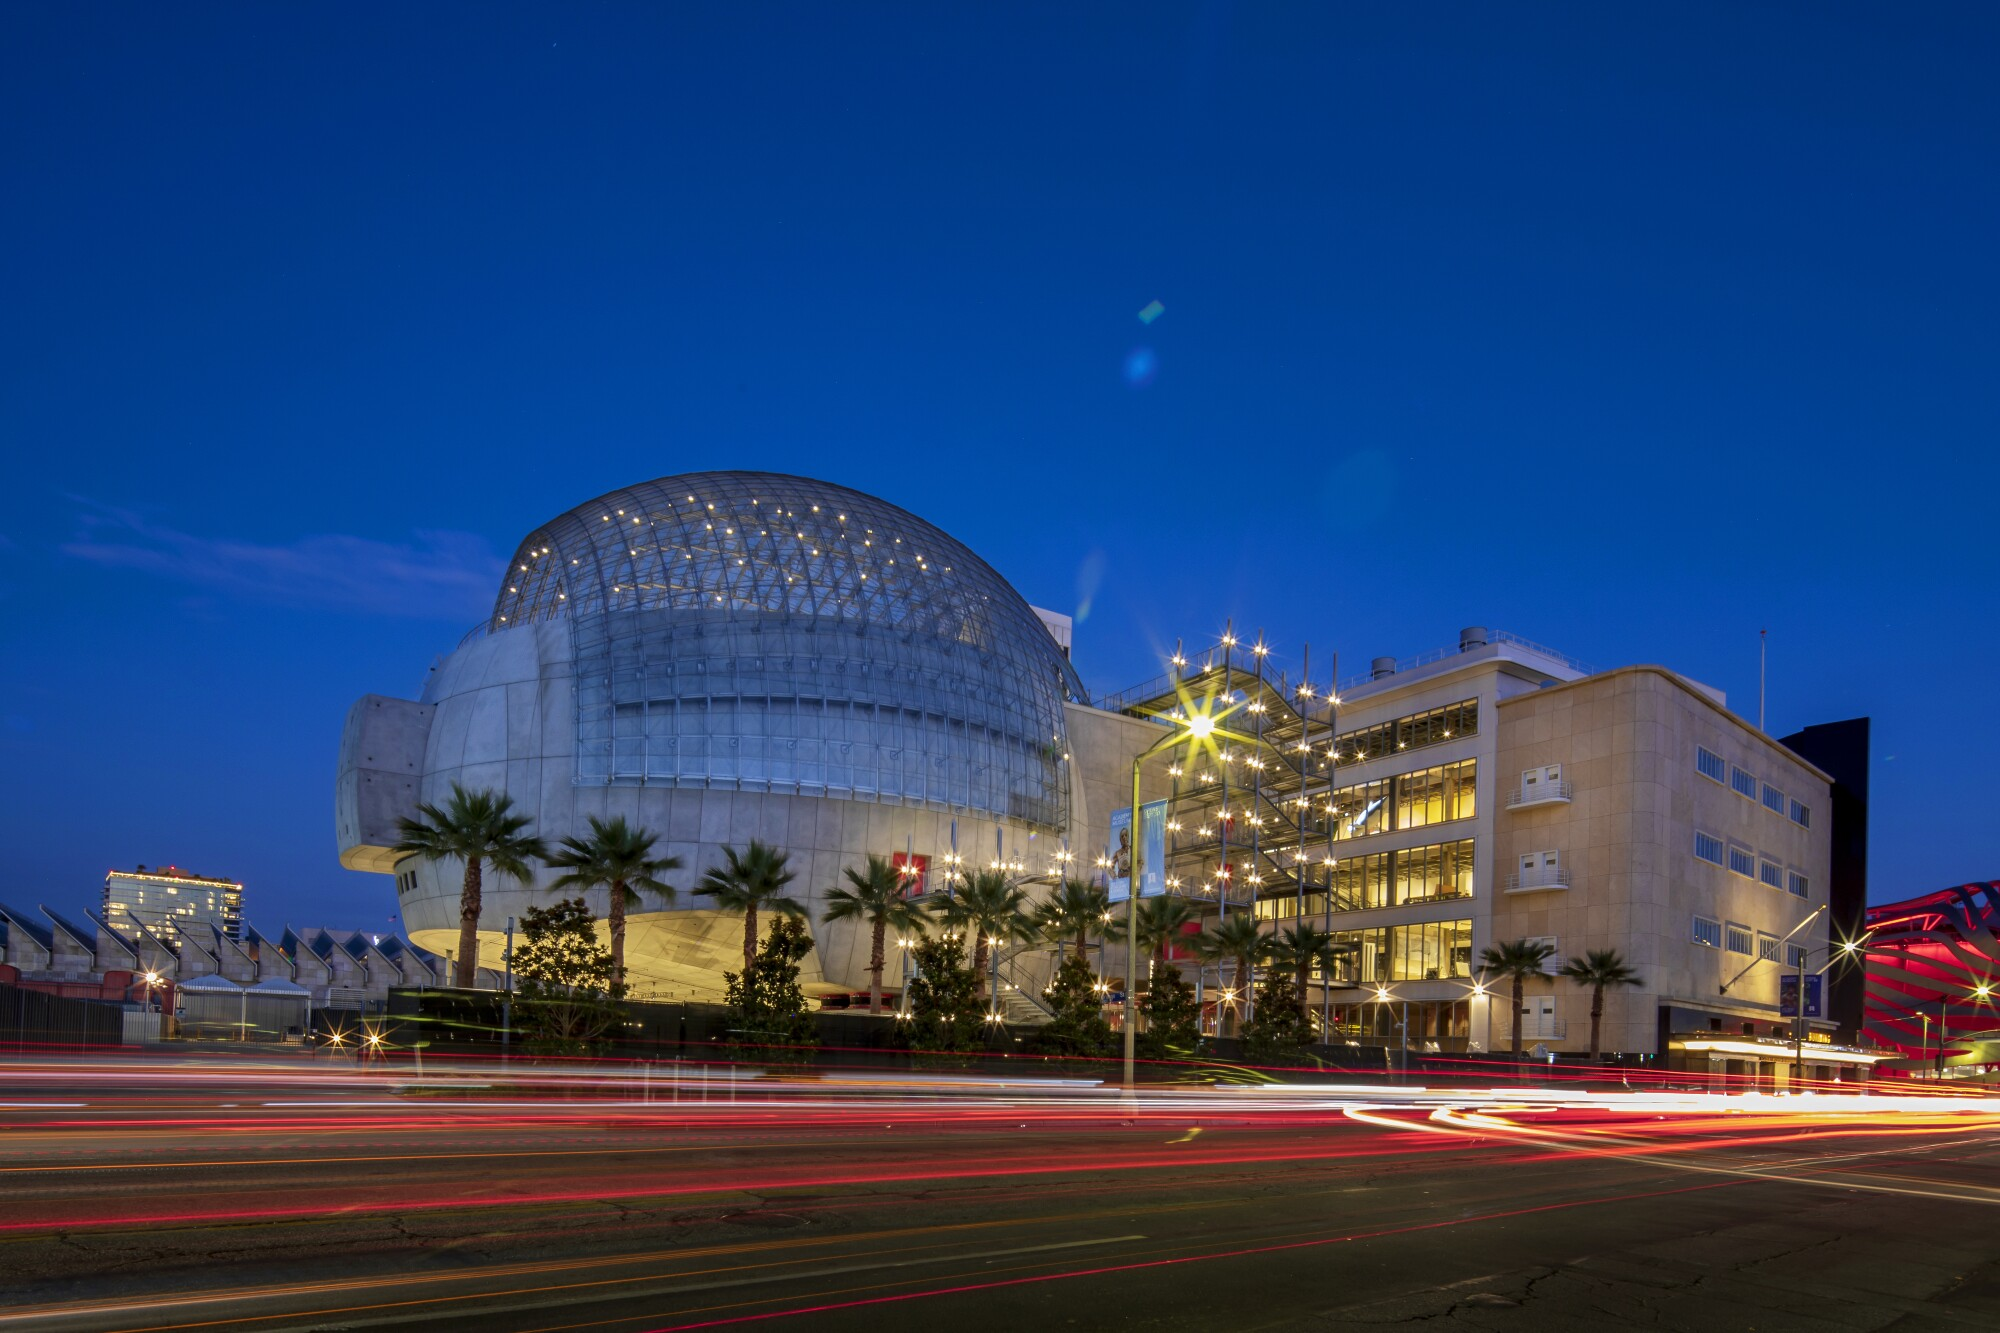 The new Academy Museum of Motion Pictures in Los Angeles.